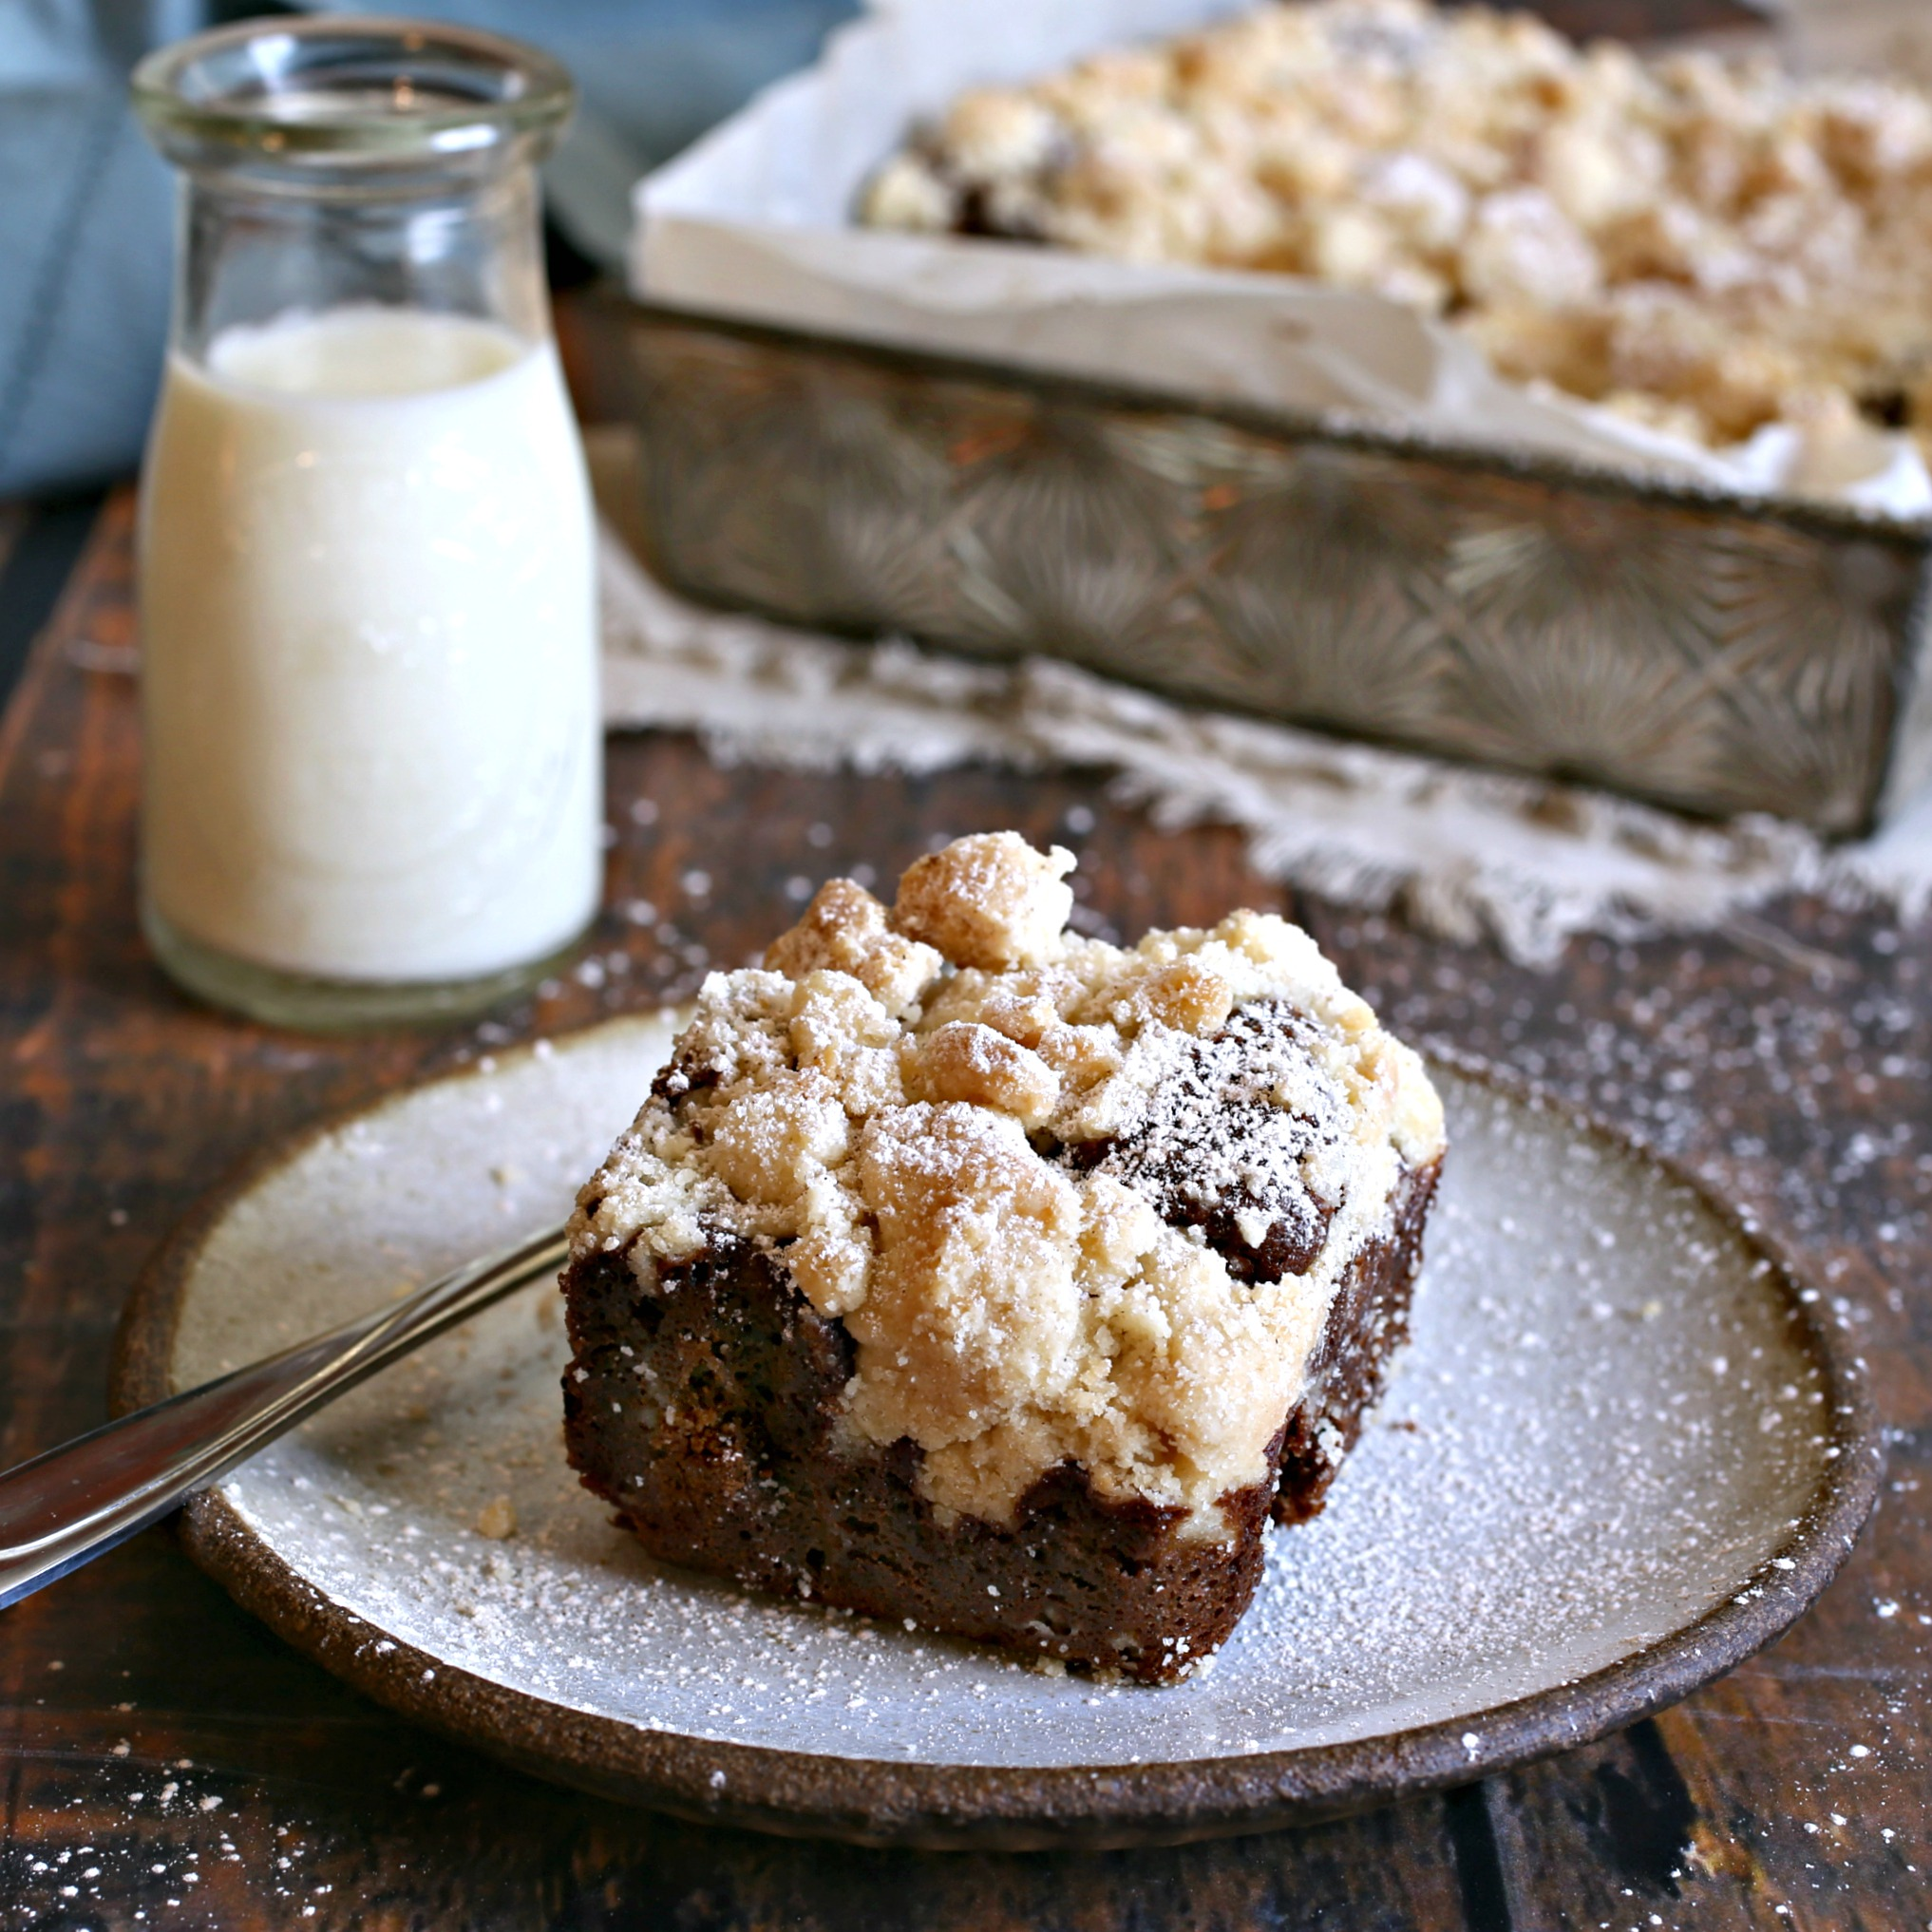 Recipe for a fudgy chocolate cake topped with a thick layer of cinnamon streusel.